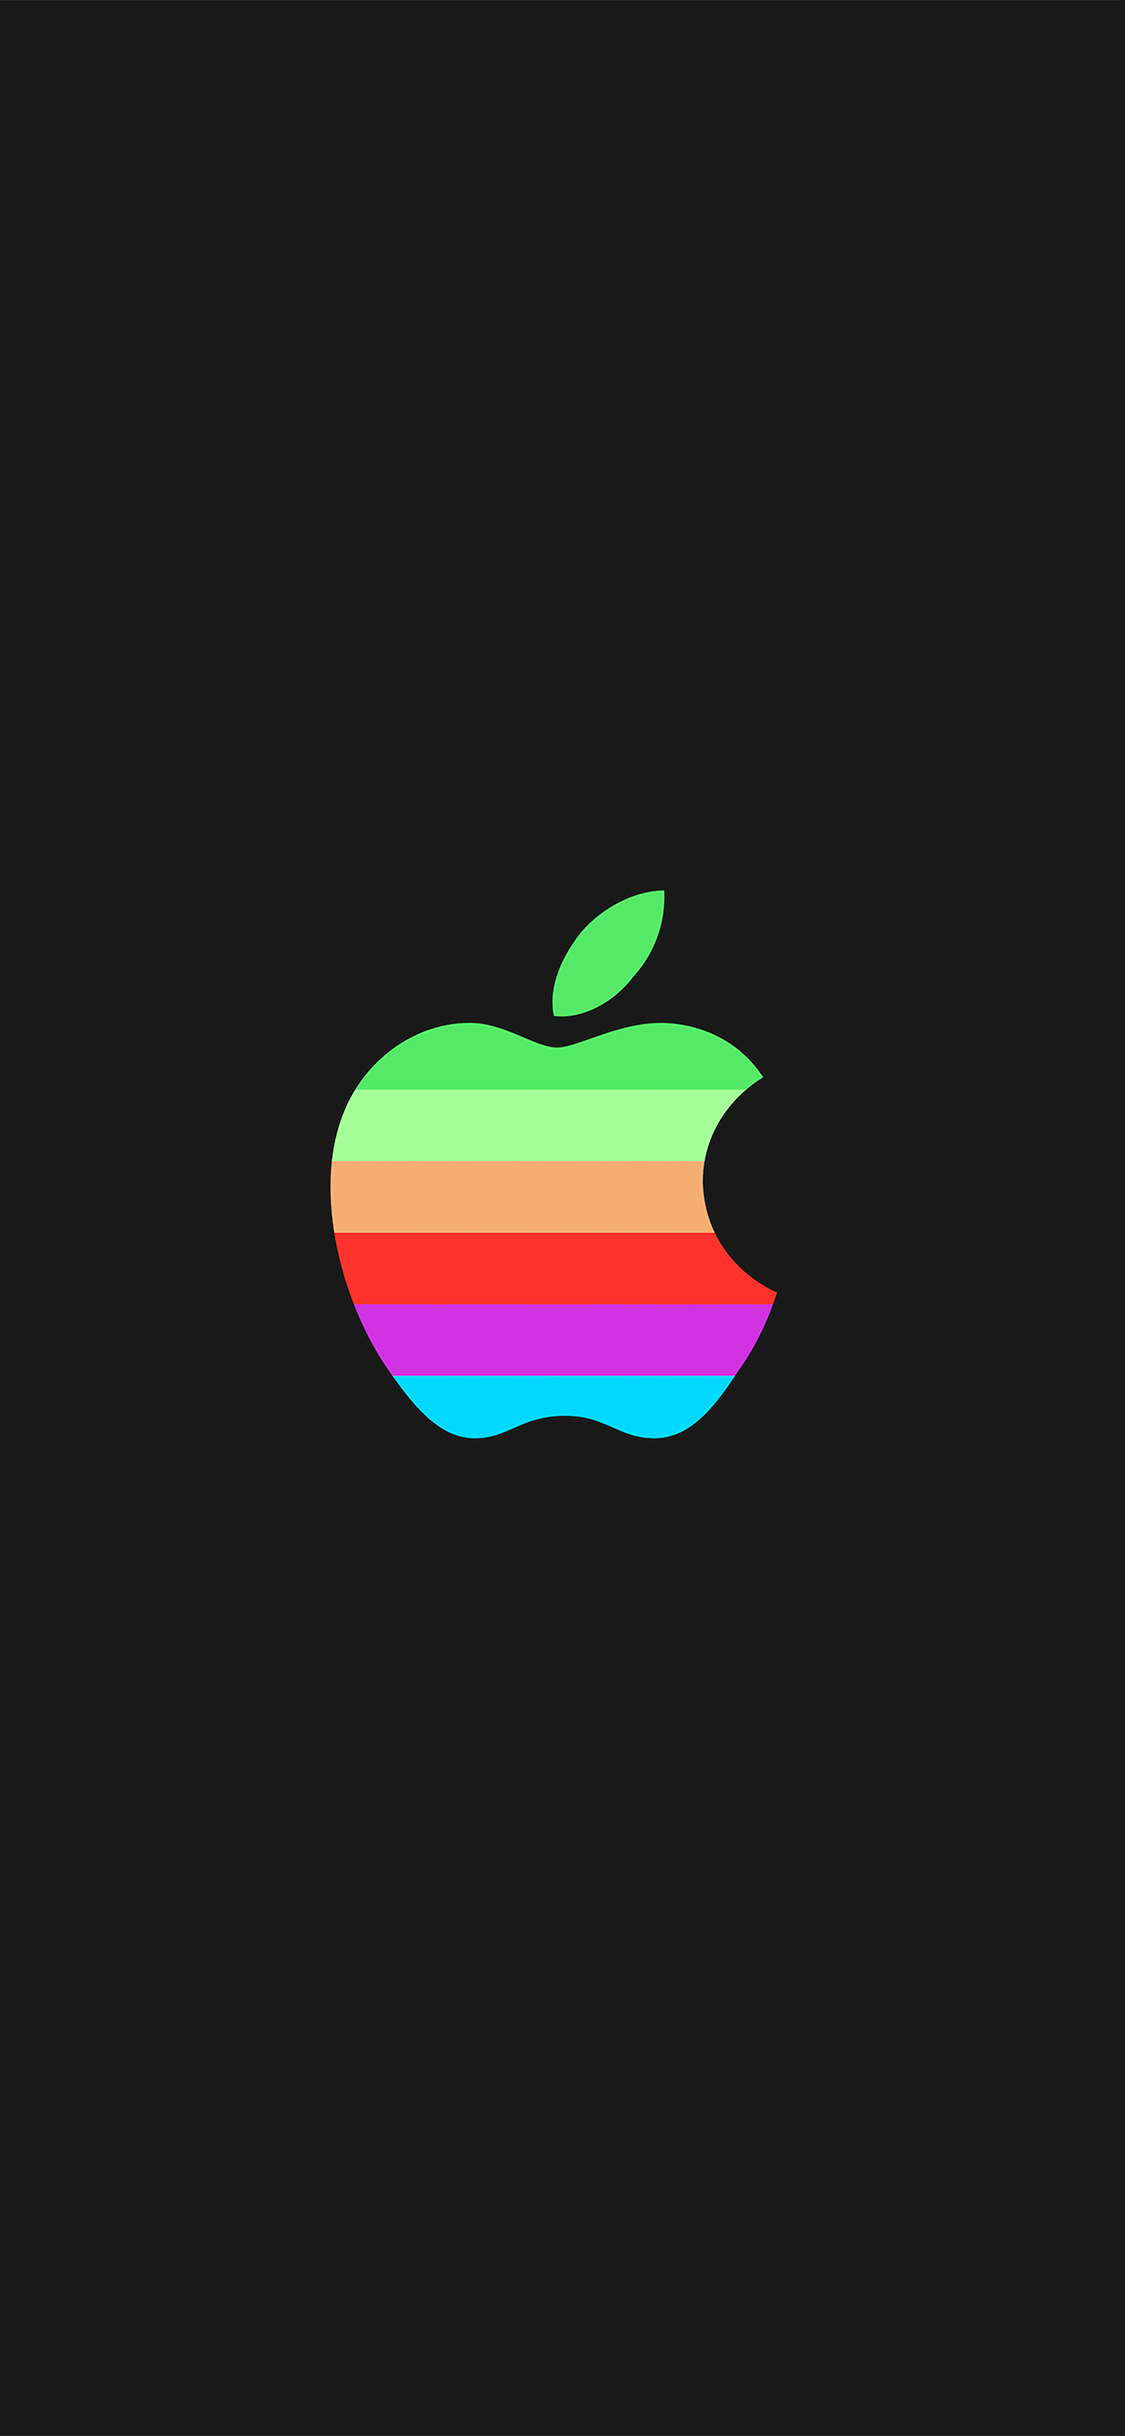 iPhoneXpapers.com-Apple-iPhone-wallpaper-aw33-minimal-logo-apple-dark-rainbow-illustration-art